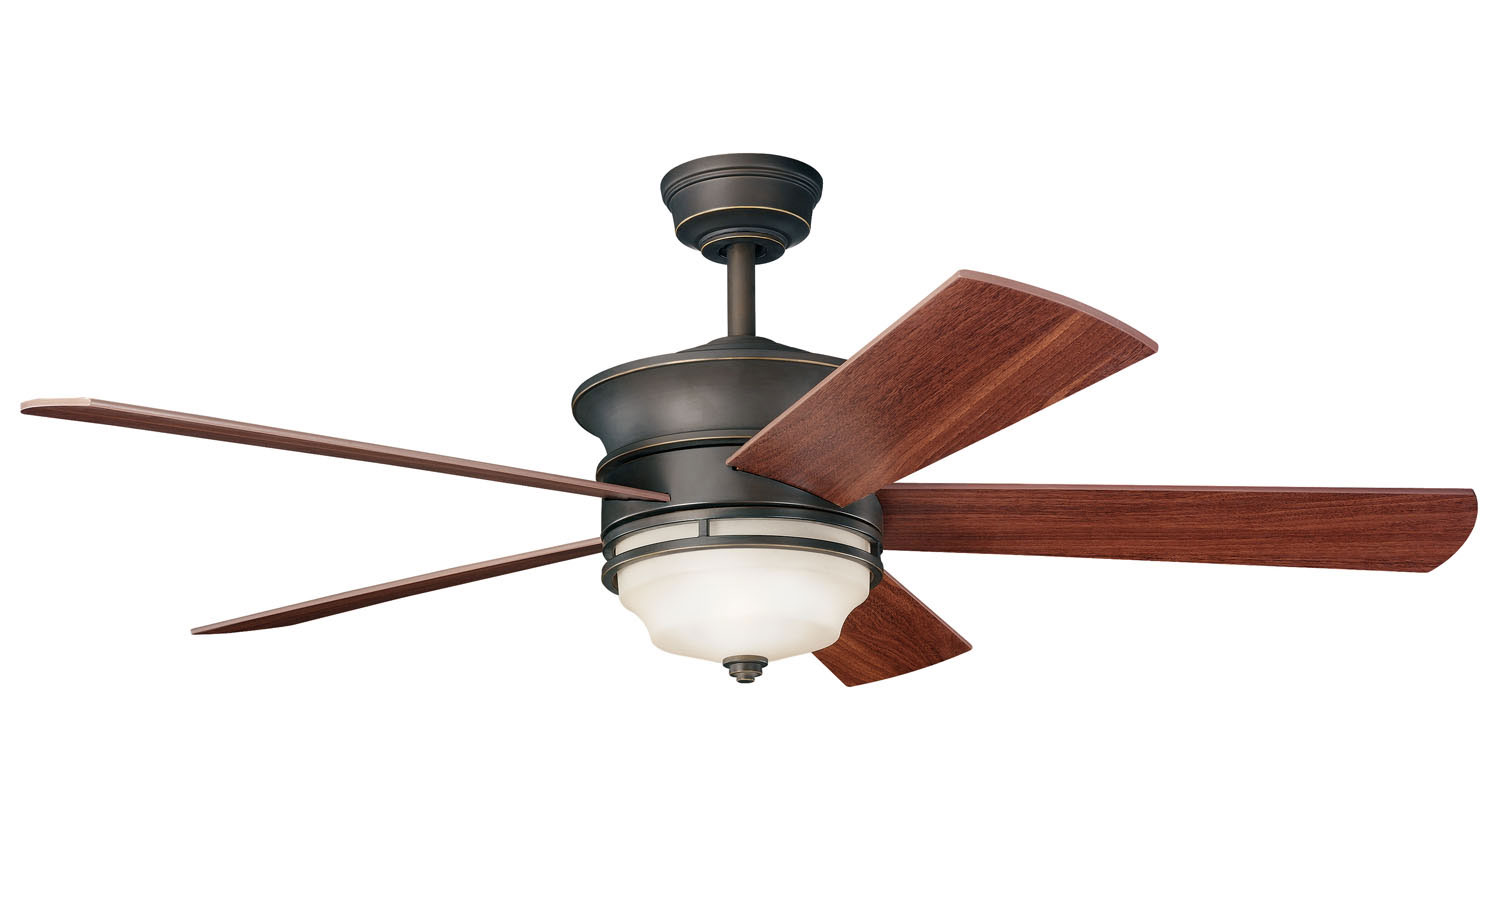 52 inchCeiling Fan from the Hendrik collection by Kichler 300114OZ